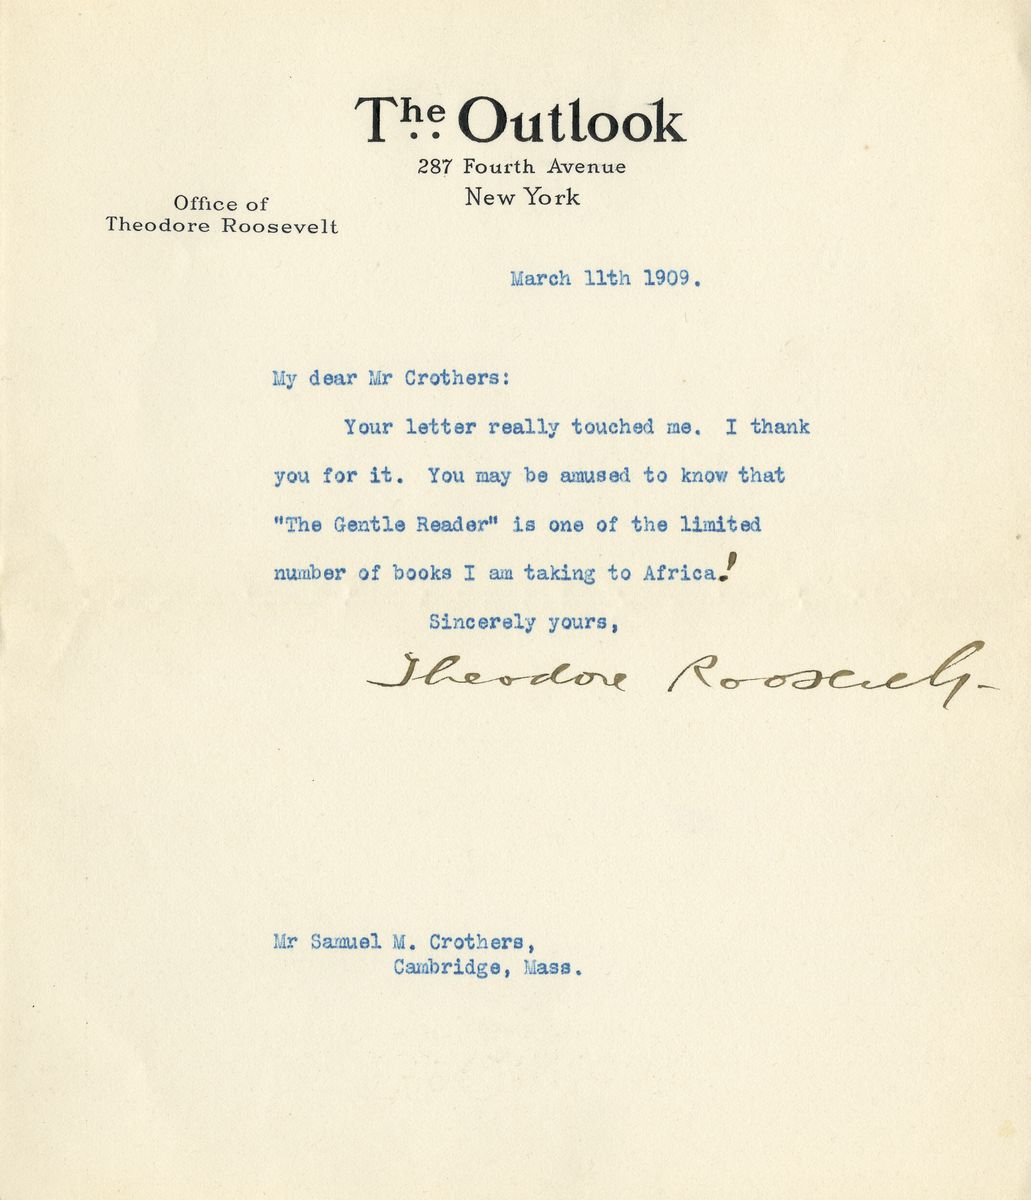 Former President Theodore Roosevelt Writes About Taking Books on His Upcoming Safari to Africa